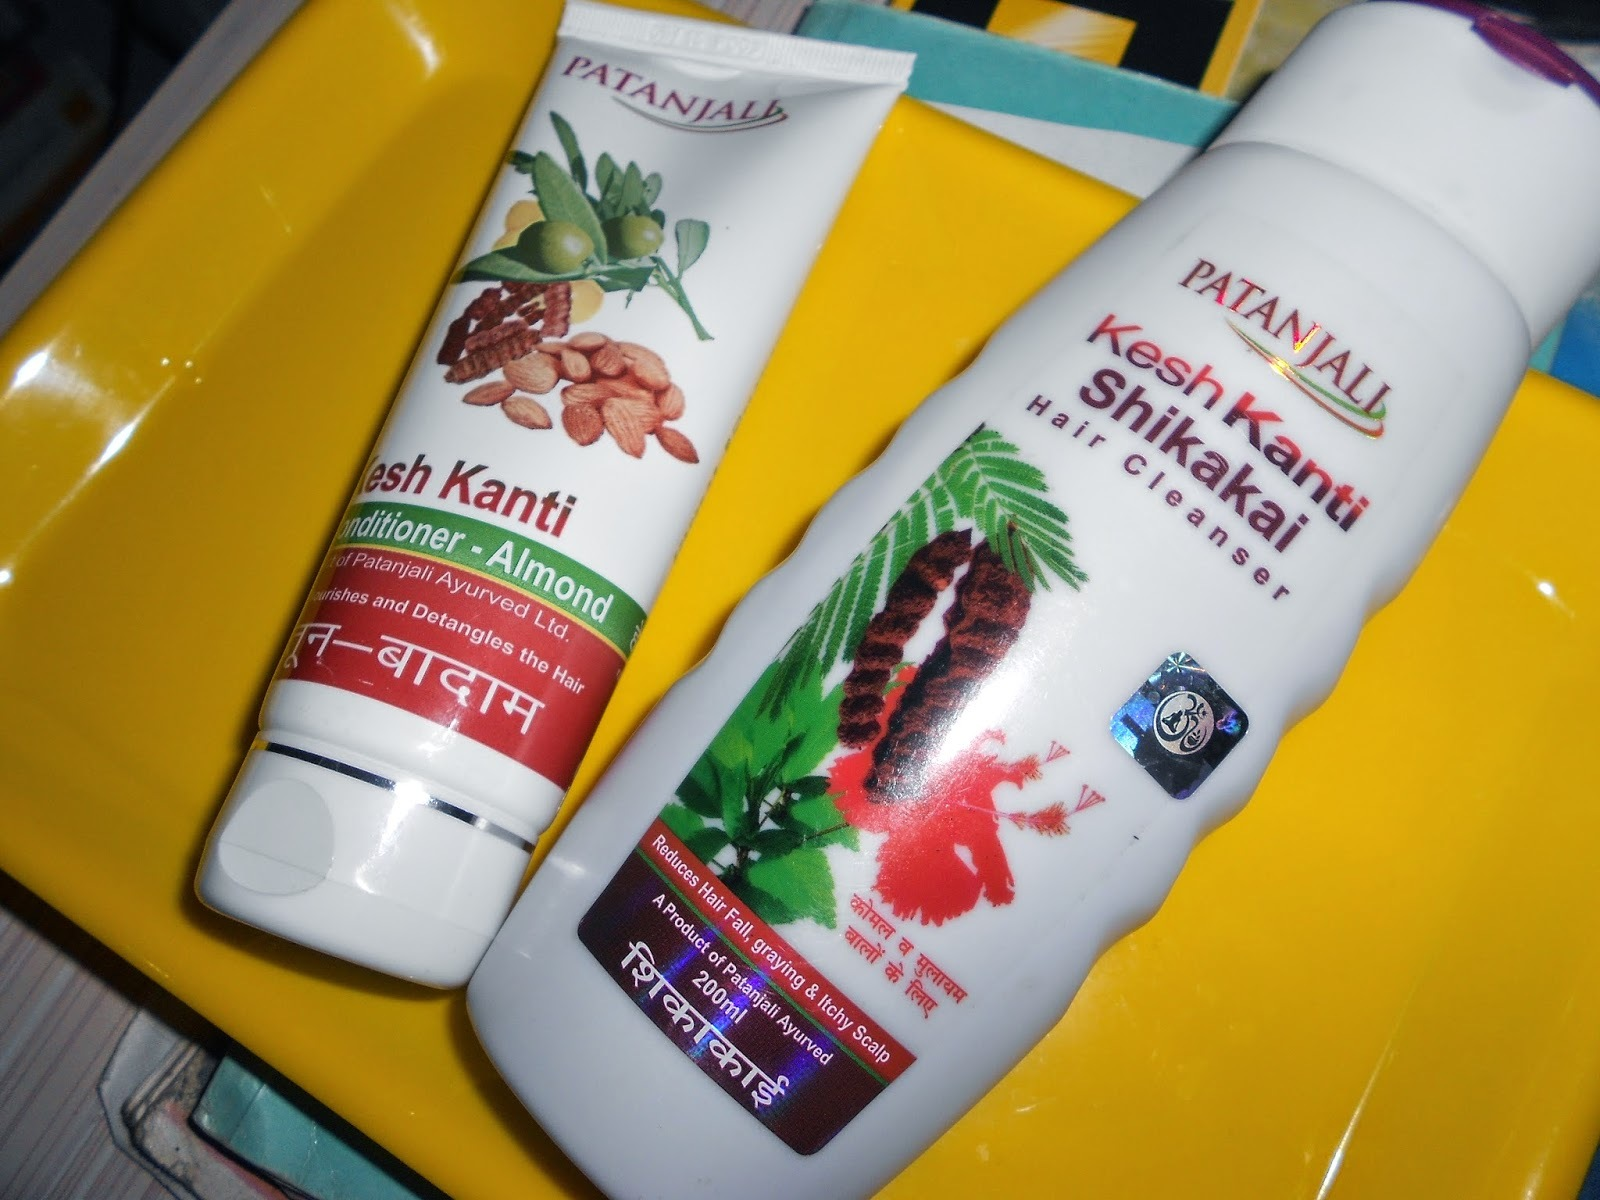 Patanjali Shikakai Hair Cleanser & Olive - Almond Conditioner Rave Reviews